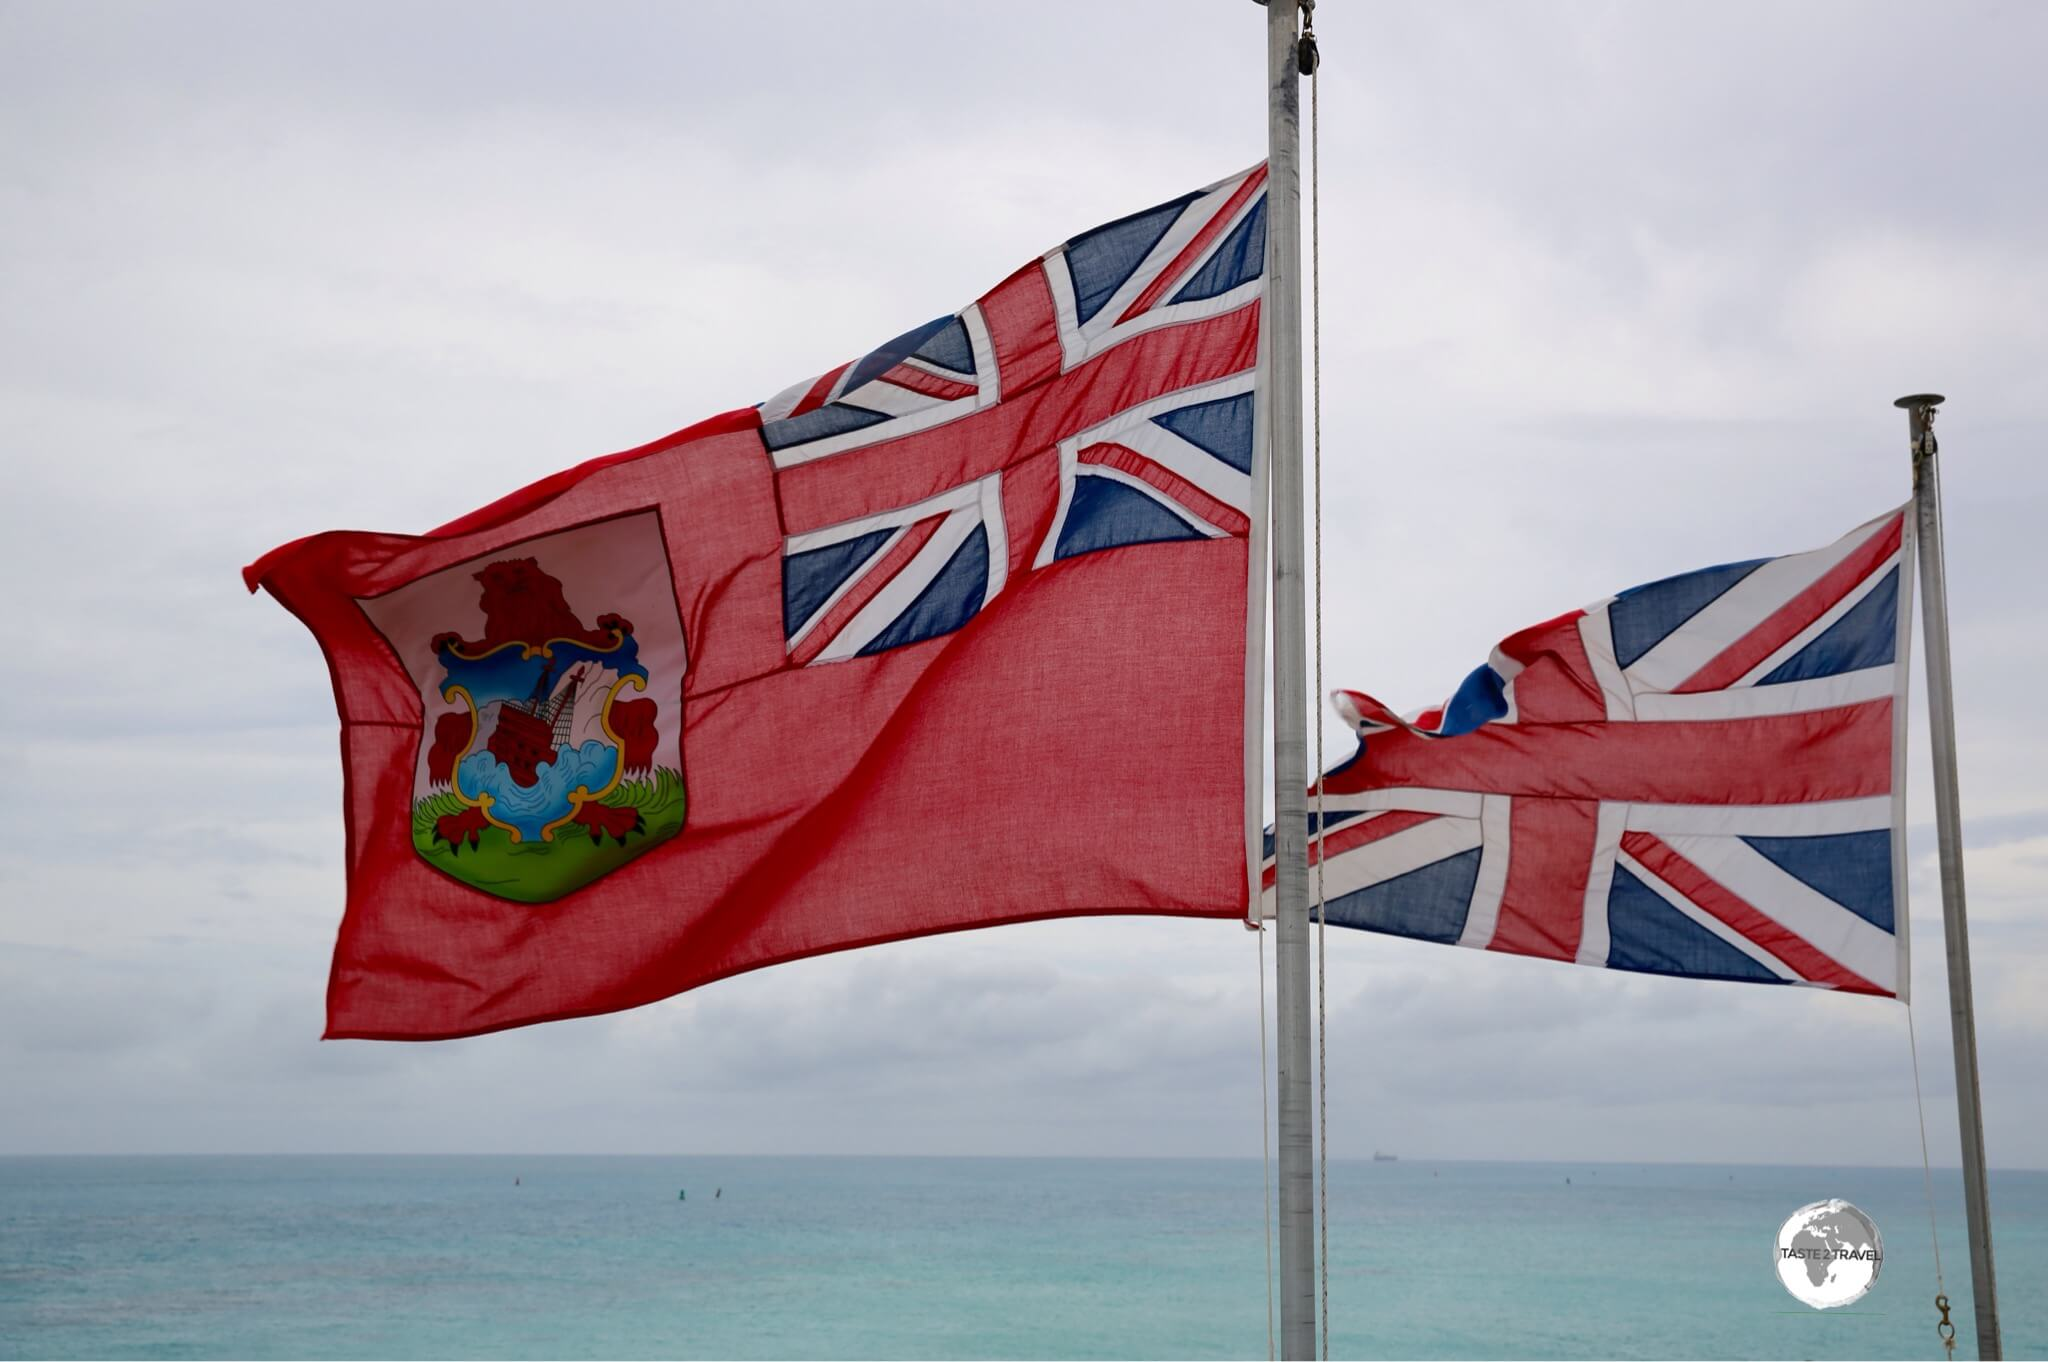 The Bermudan flag alongside the Union Jack.